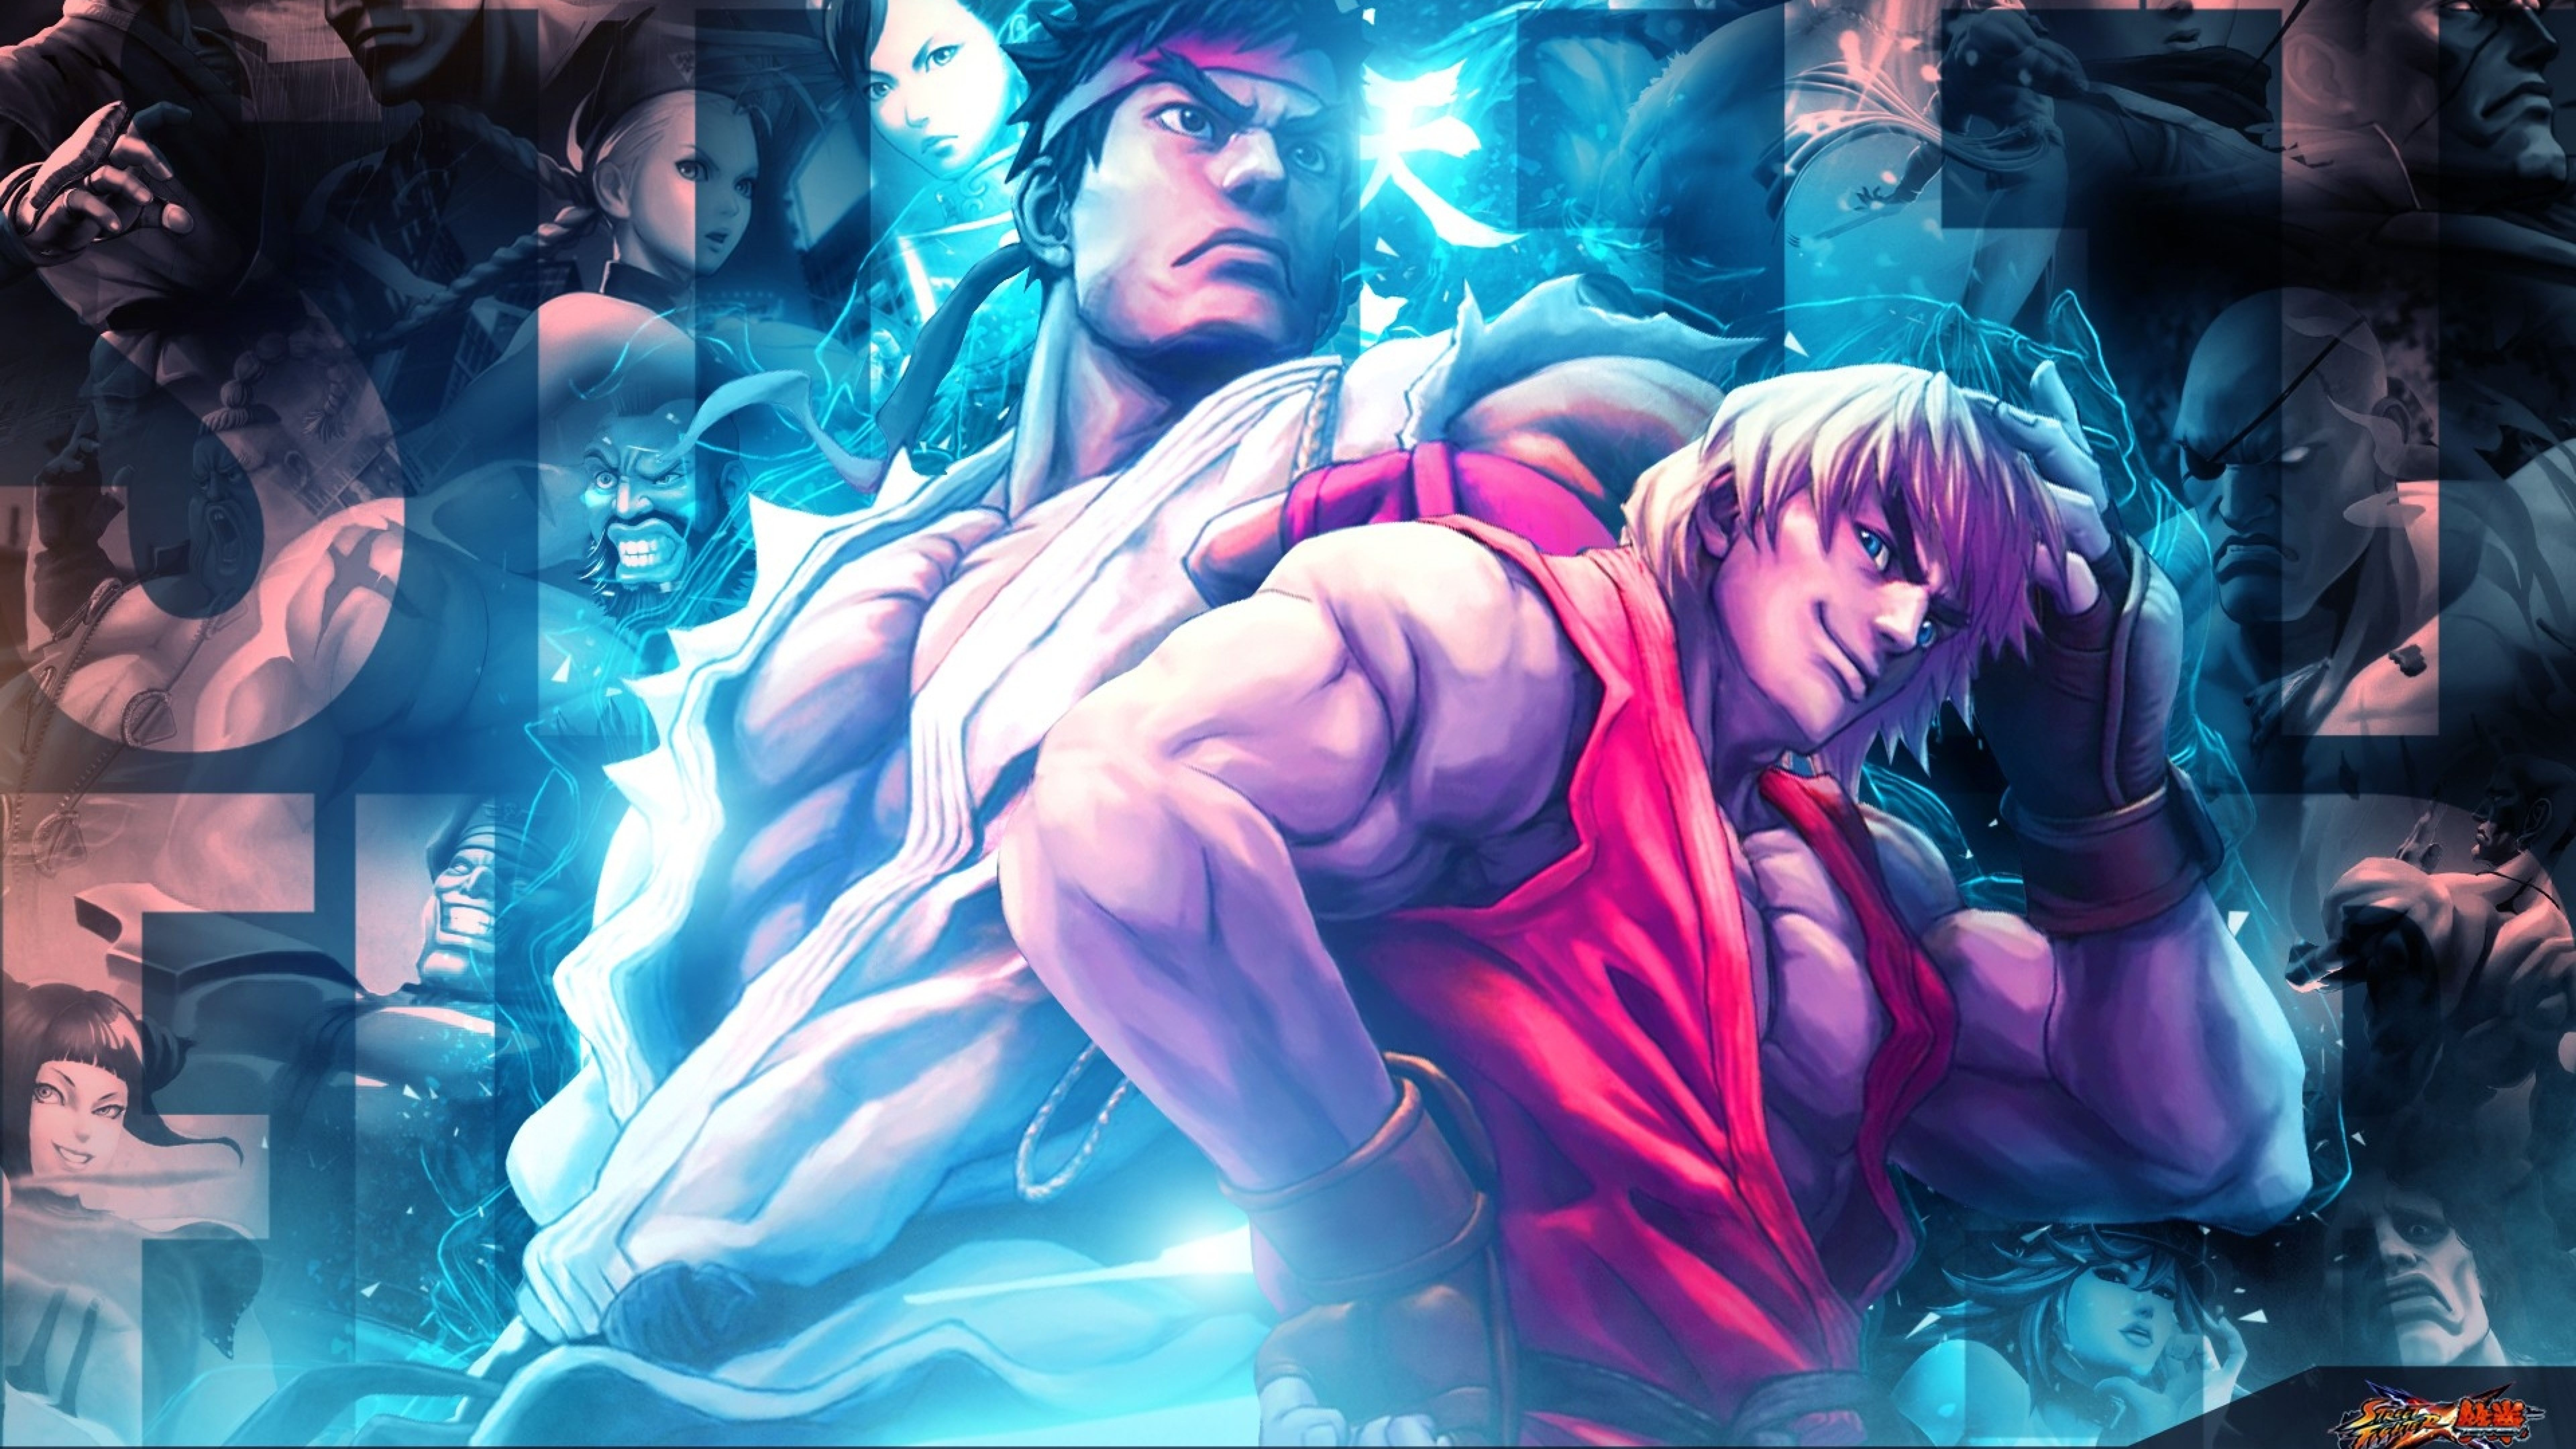 Ryu And Other Characters From Street Fighter X Tekken Poster